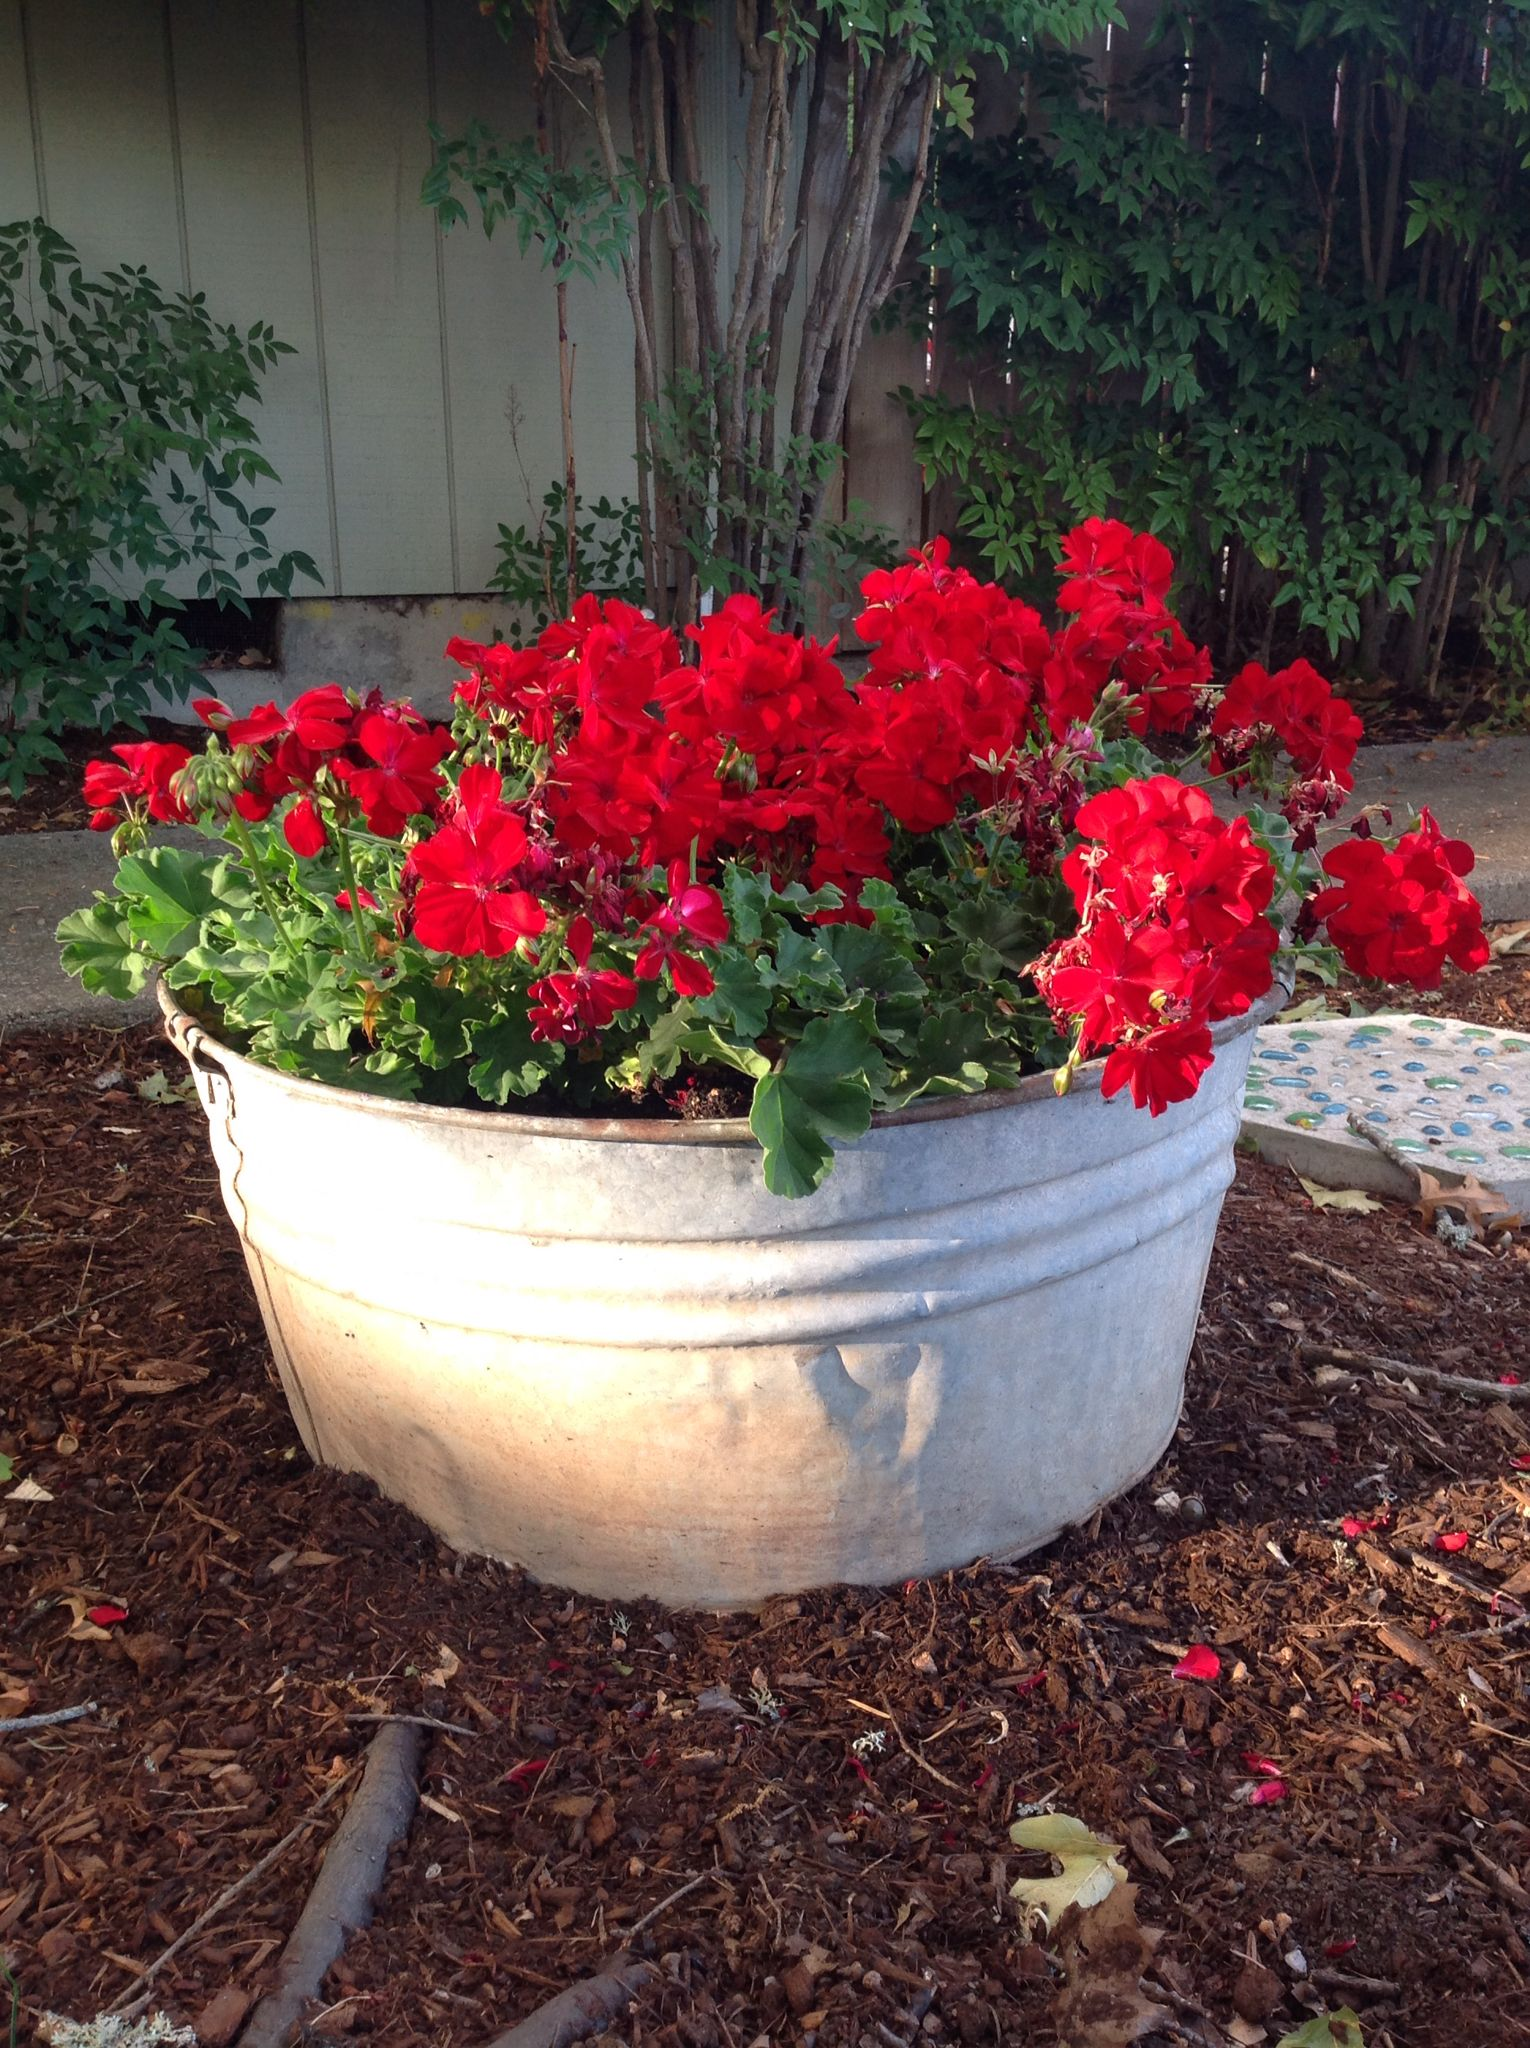 Red geraniums in old tub